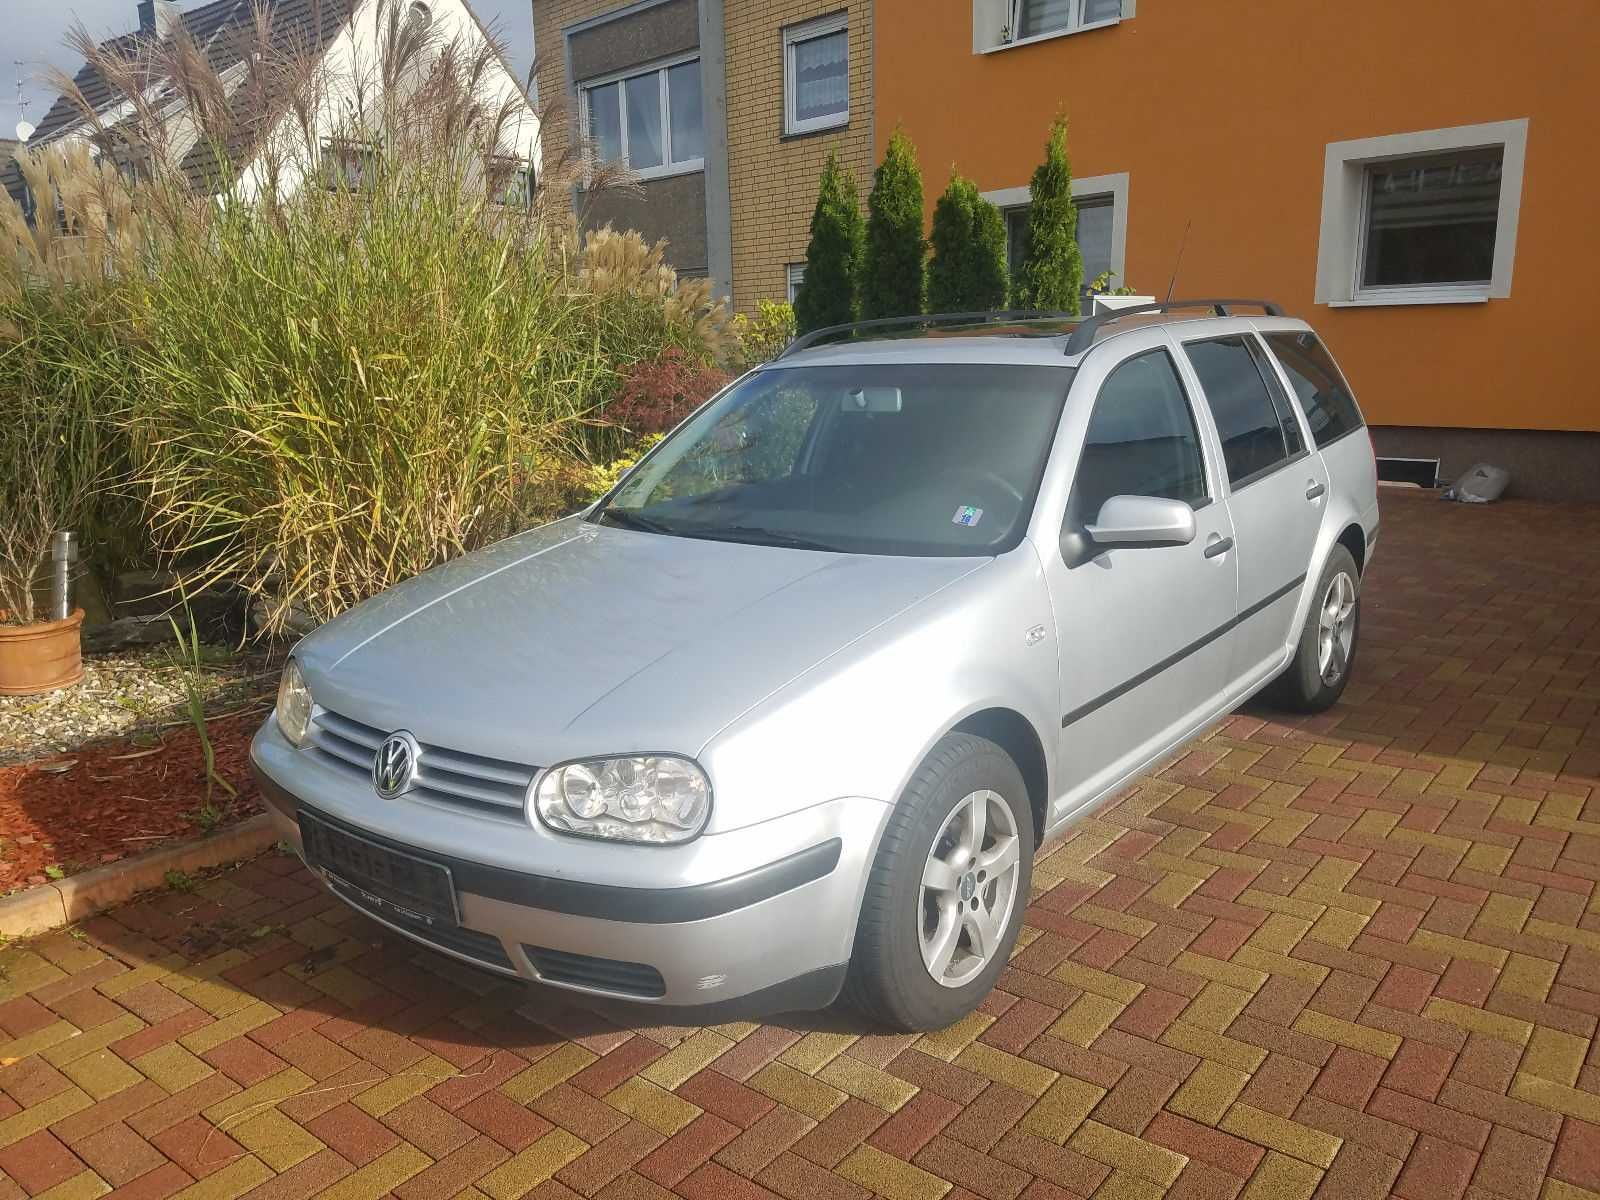 Volkswagen Golf IV Variant   Check more at https://0nlineshop.de/volkswagen-golf-iv-variant/